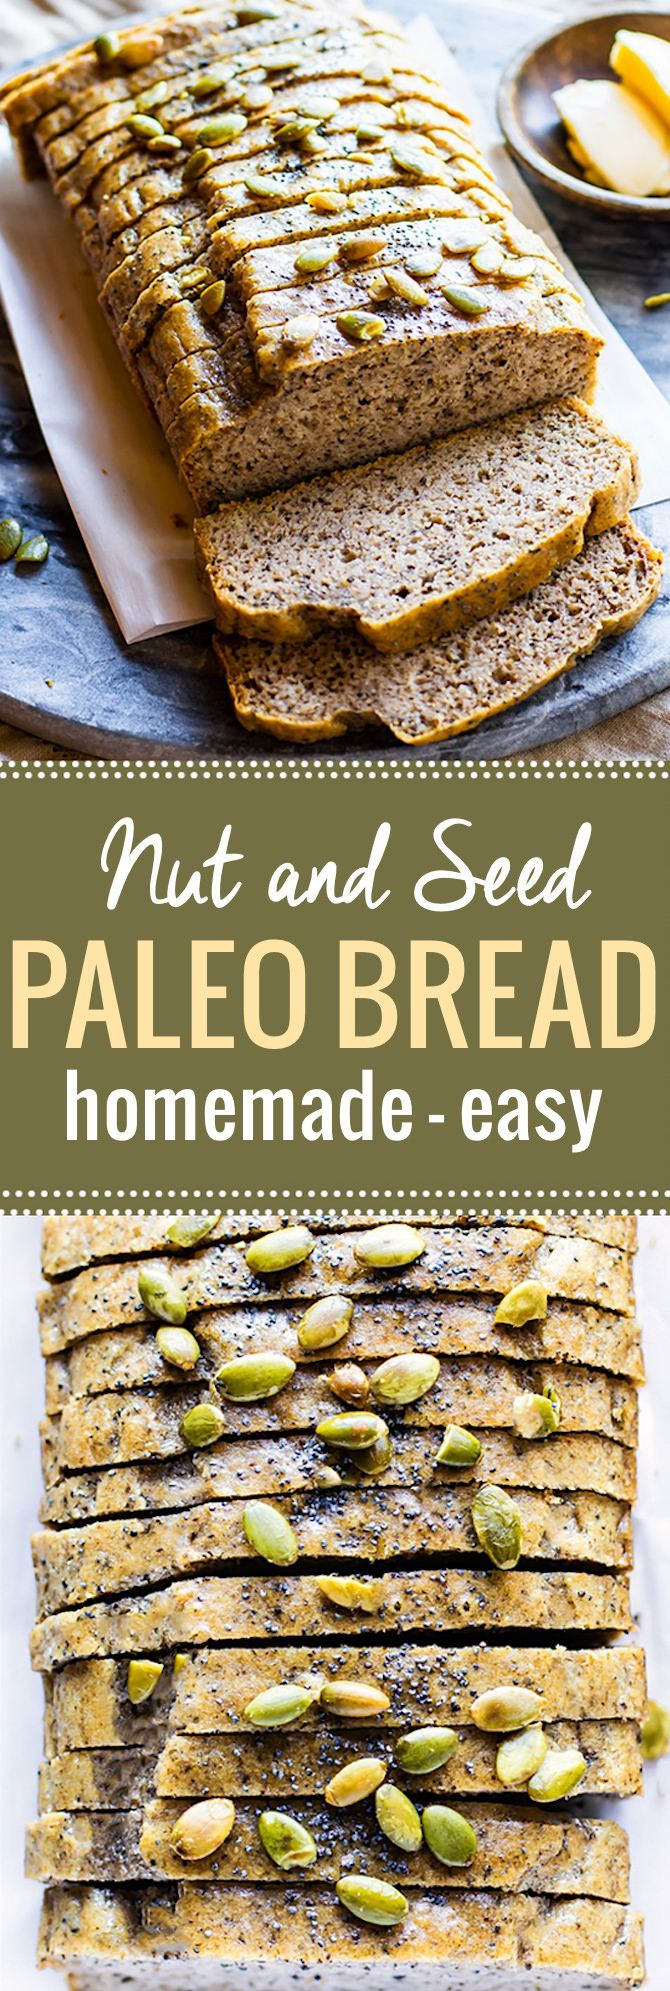 Homemade Nut and Seed Paleo Bread. Finally,  a homemade paleo bread that is soft, easy to make, and great for sandwiches. This wholesome nutty bread is freezable and low carb! A grain free bread to enjoy at each meal. /cottercrunch/